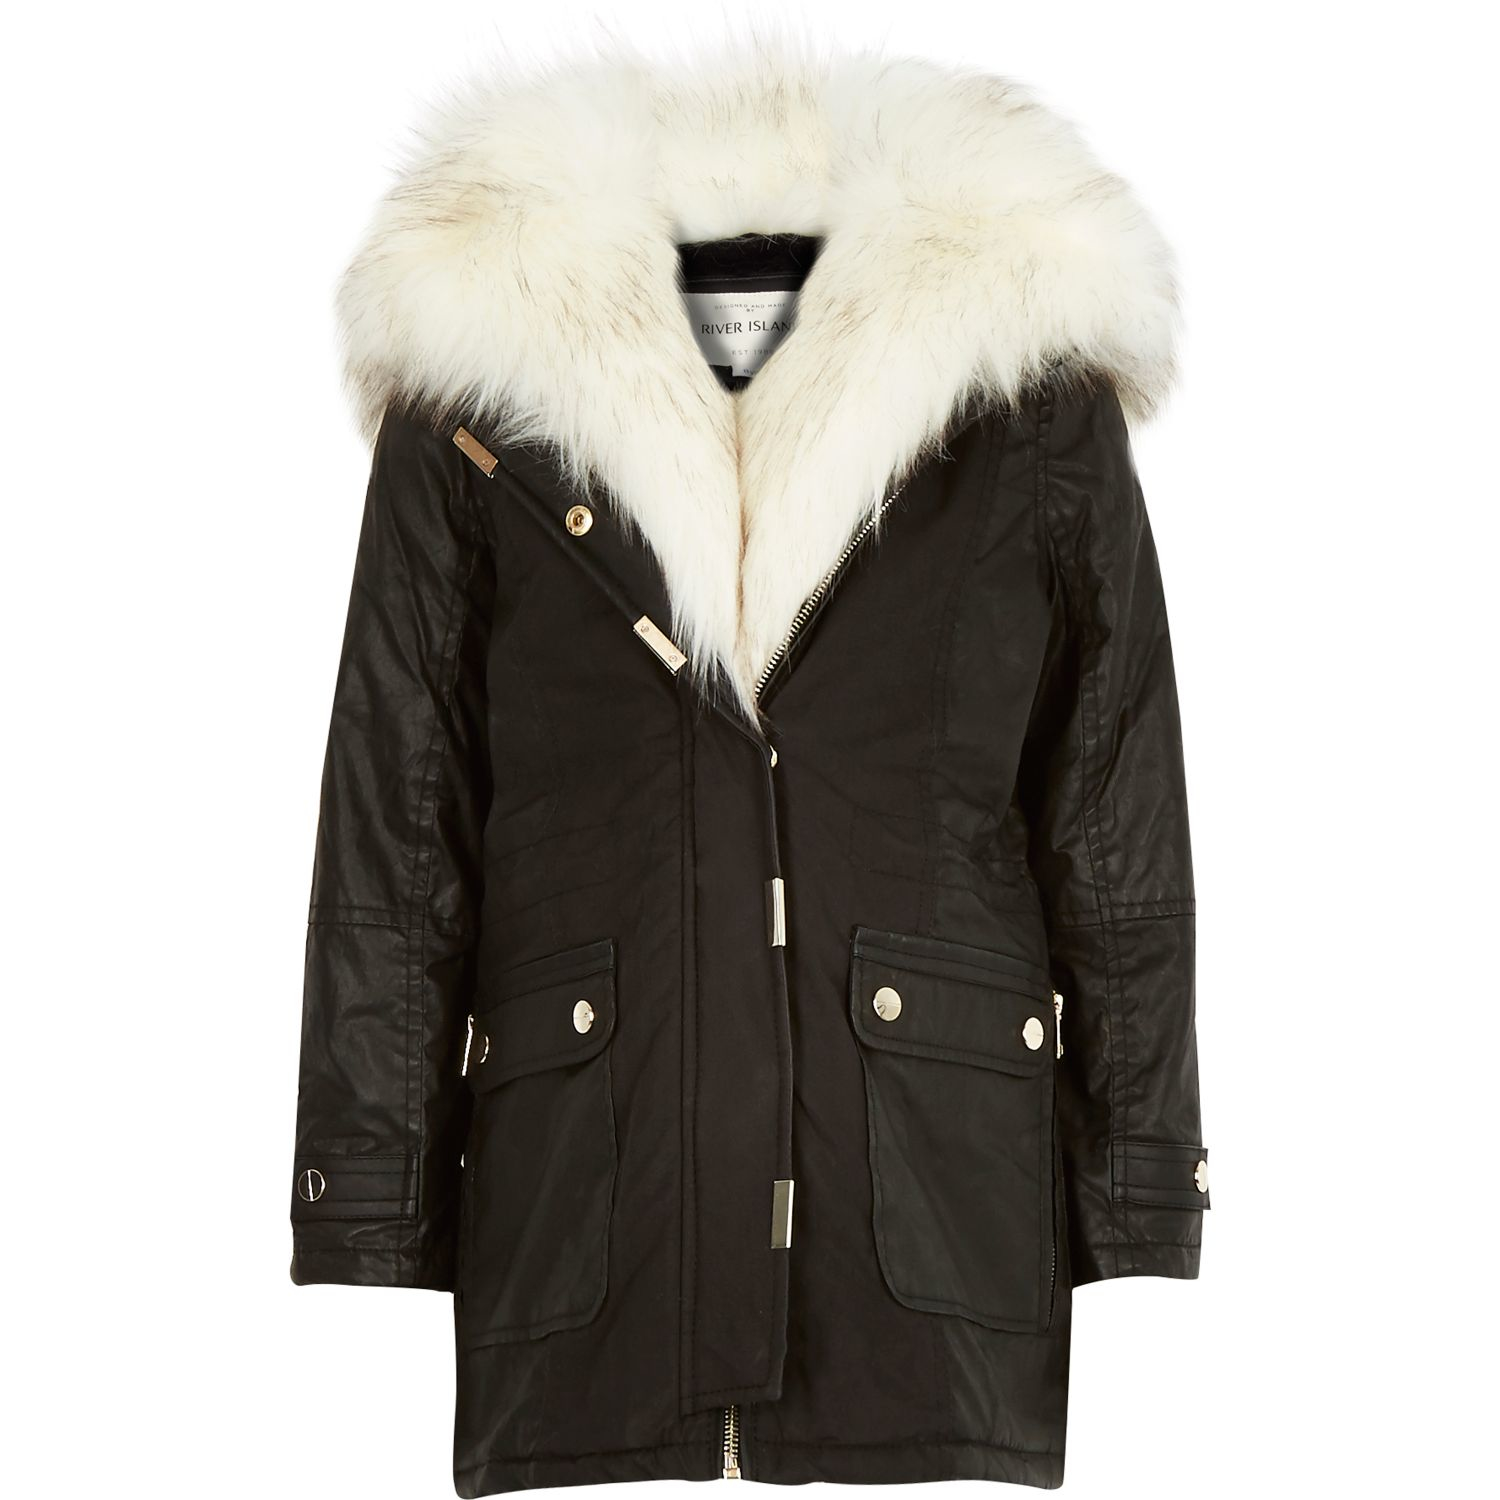 River Island Faux Fur Coats And Jackets - Tradingbasis